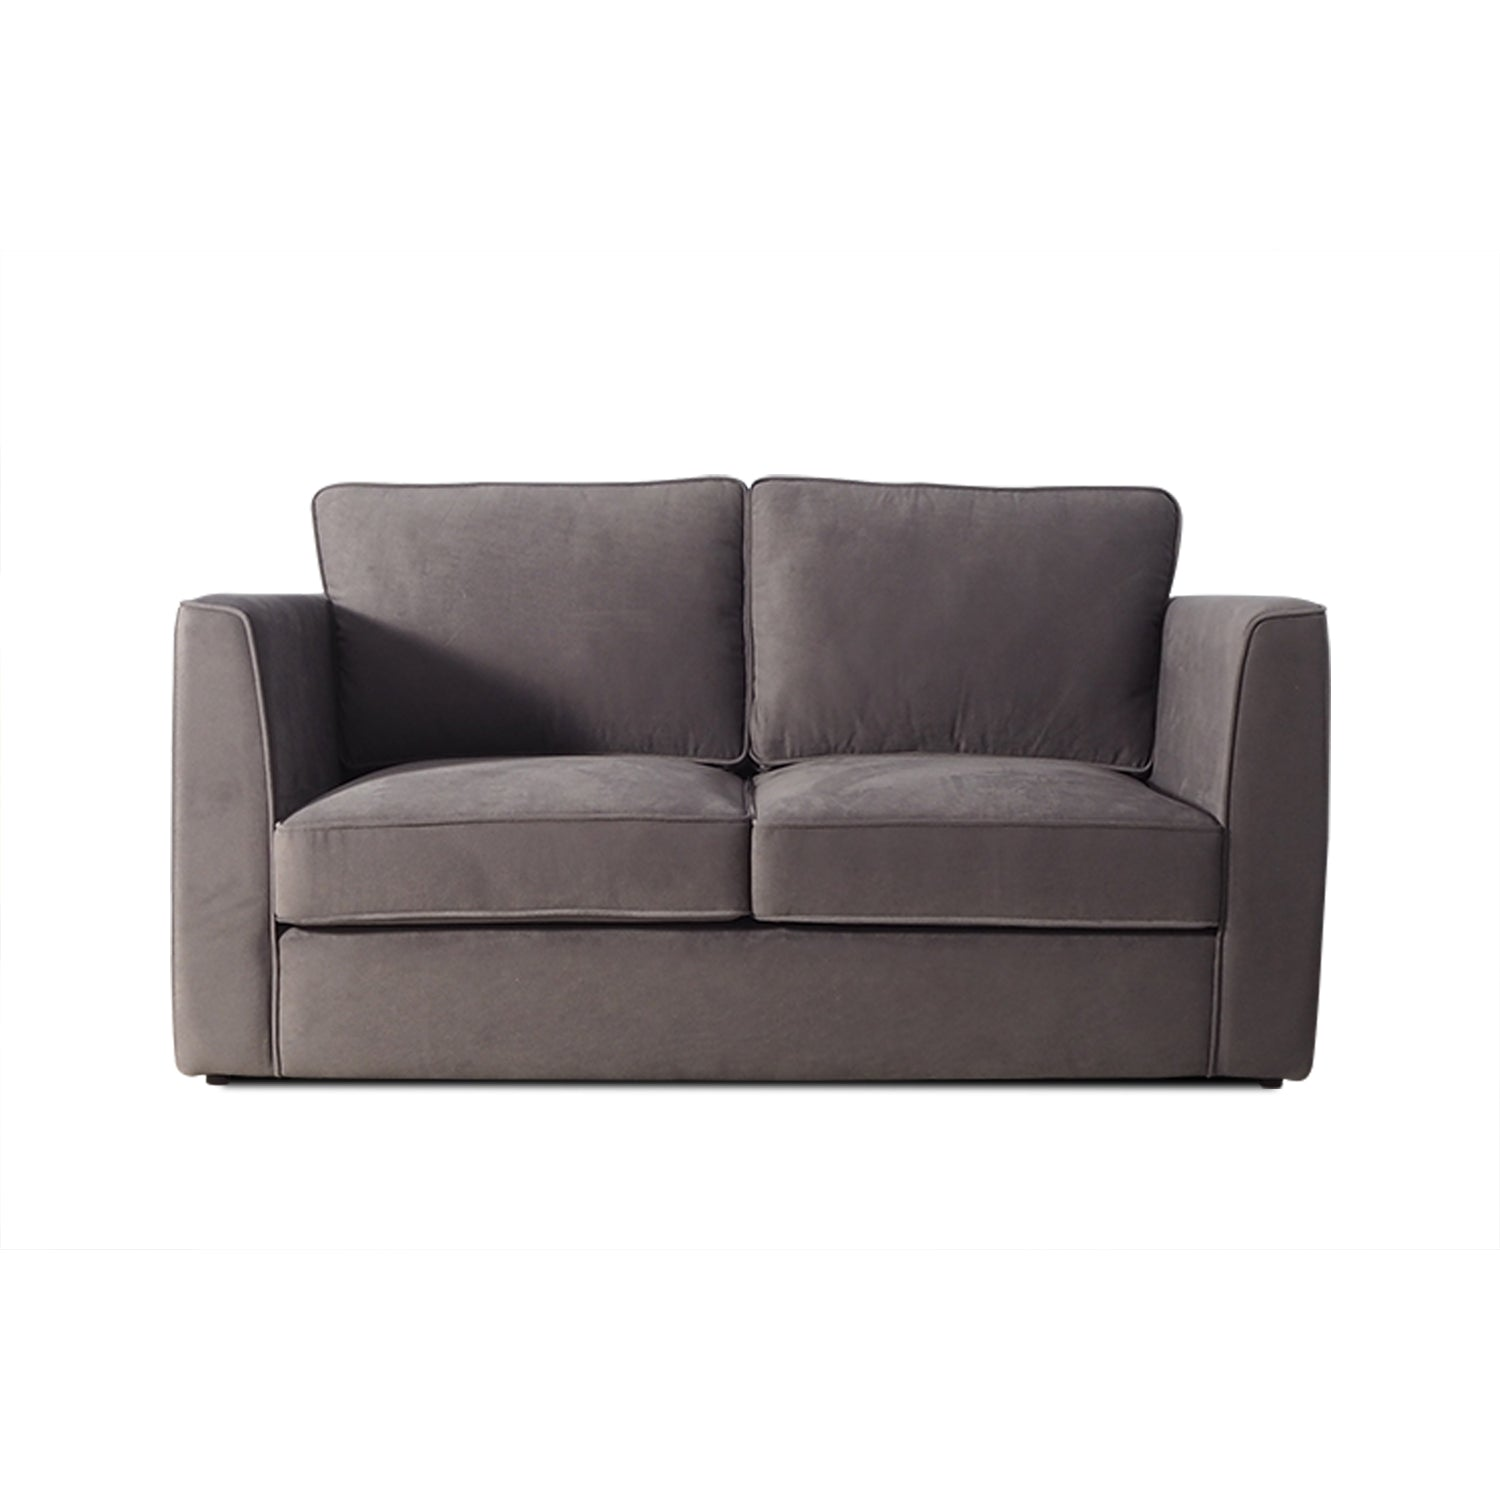 Sofa Floor 2 Seater